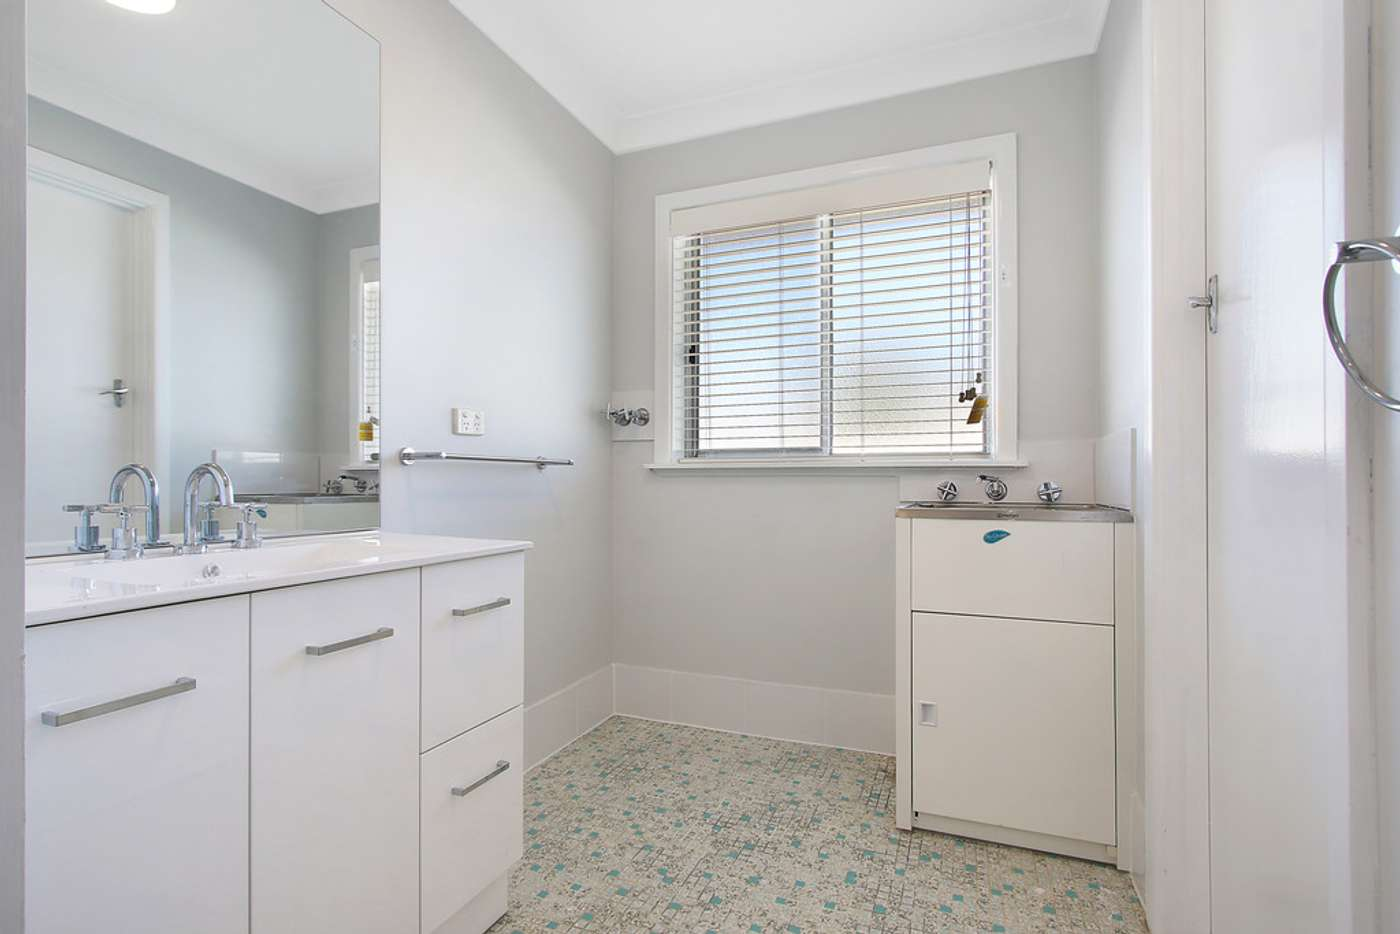 Sixth view of Homely unit listing, 3/461 Prune Street, Lavington NSW 2641